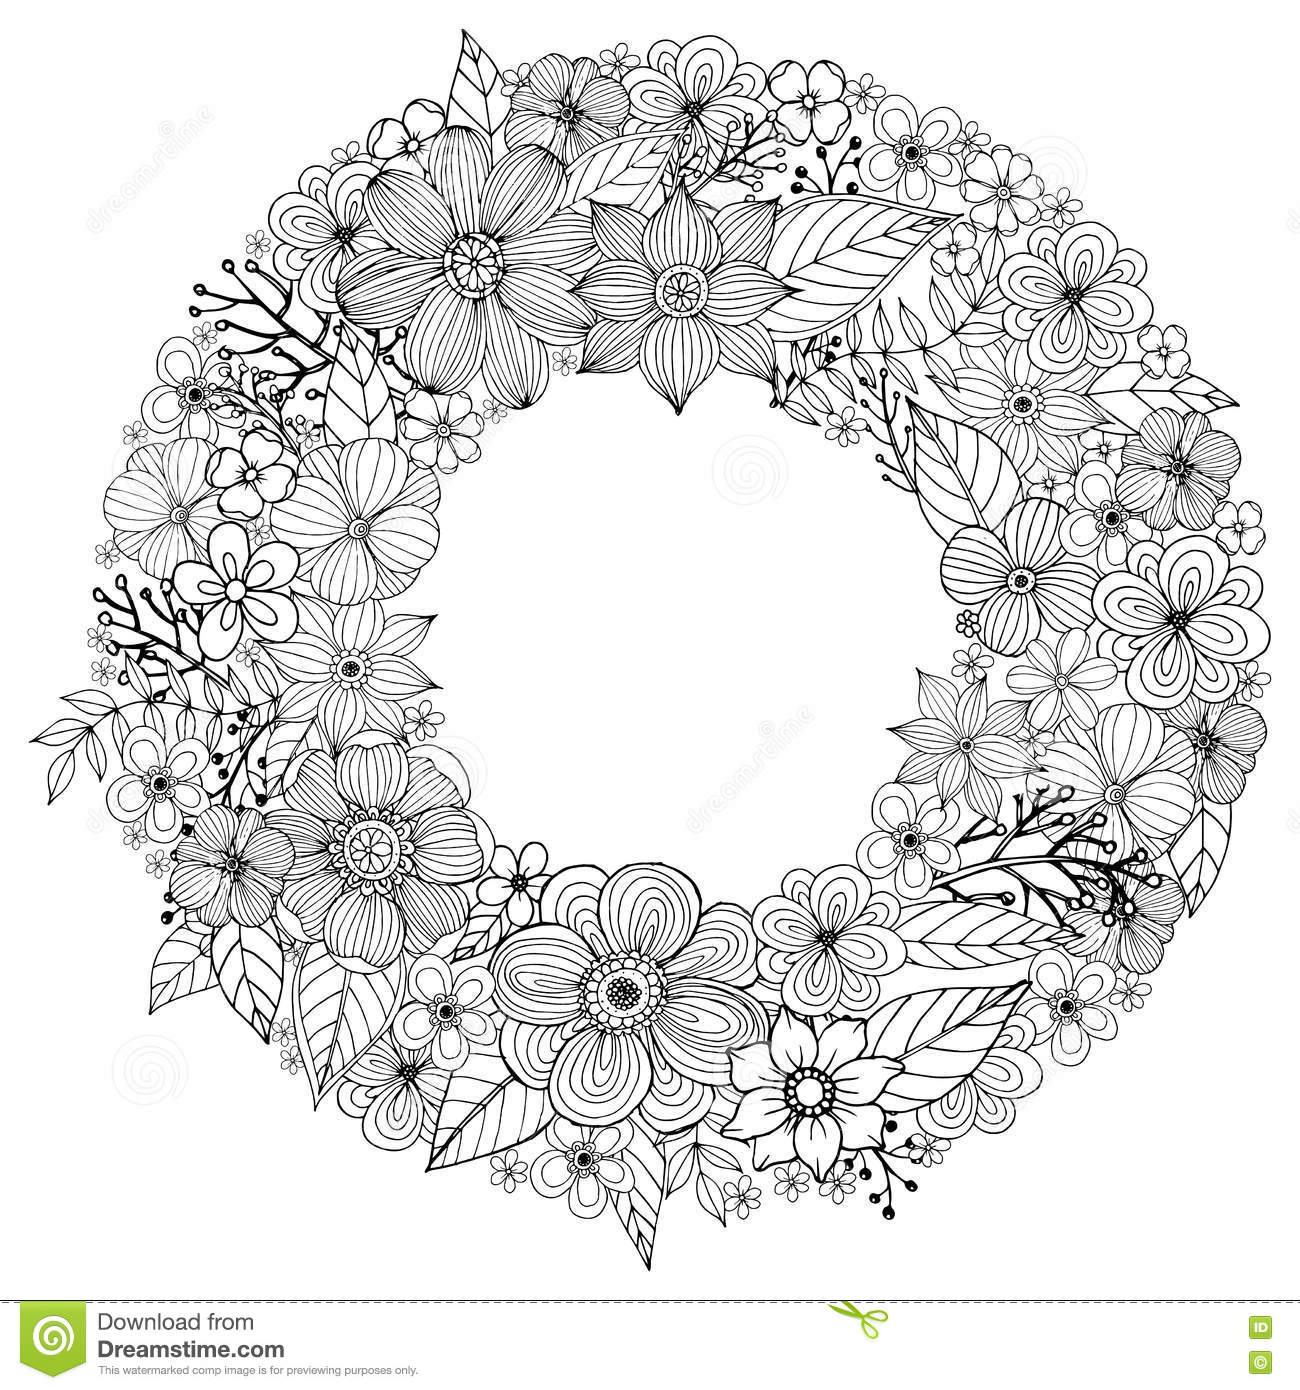 Flower Doodle Drawing Freehand Coloring Page With